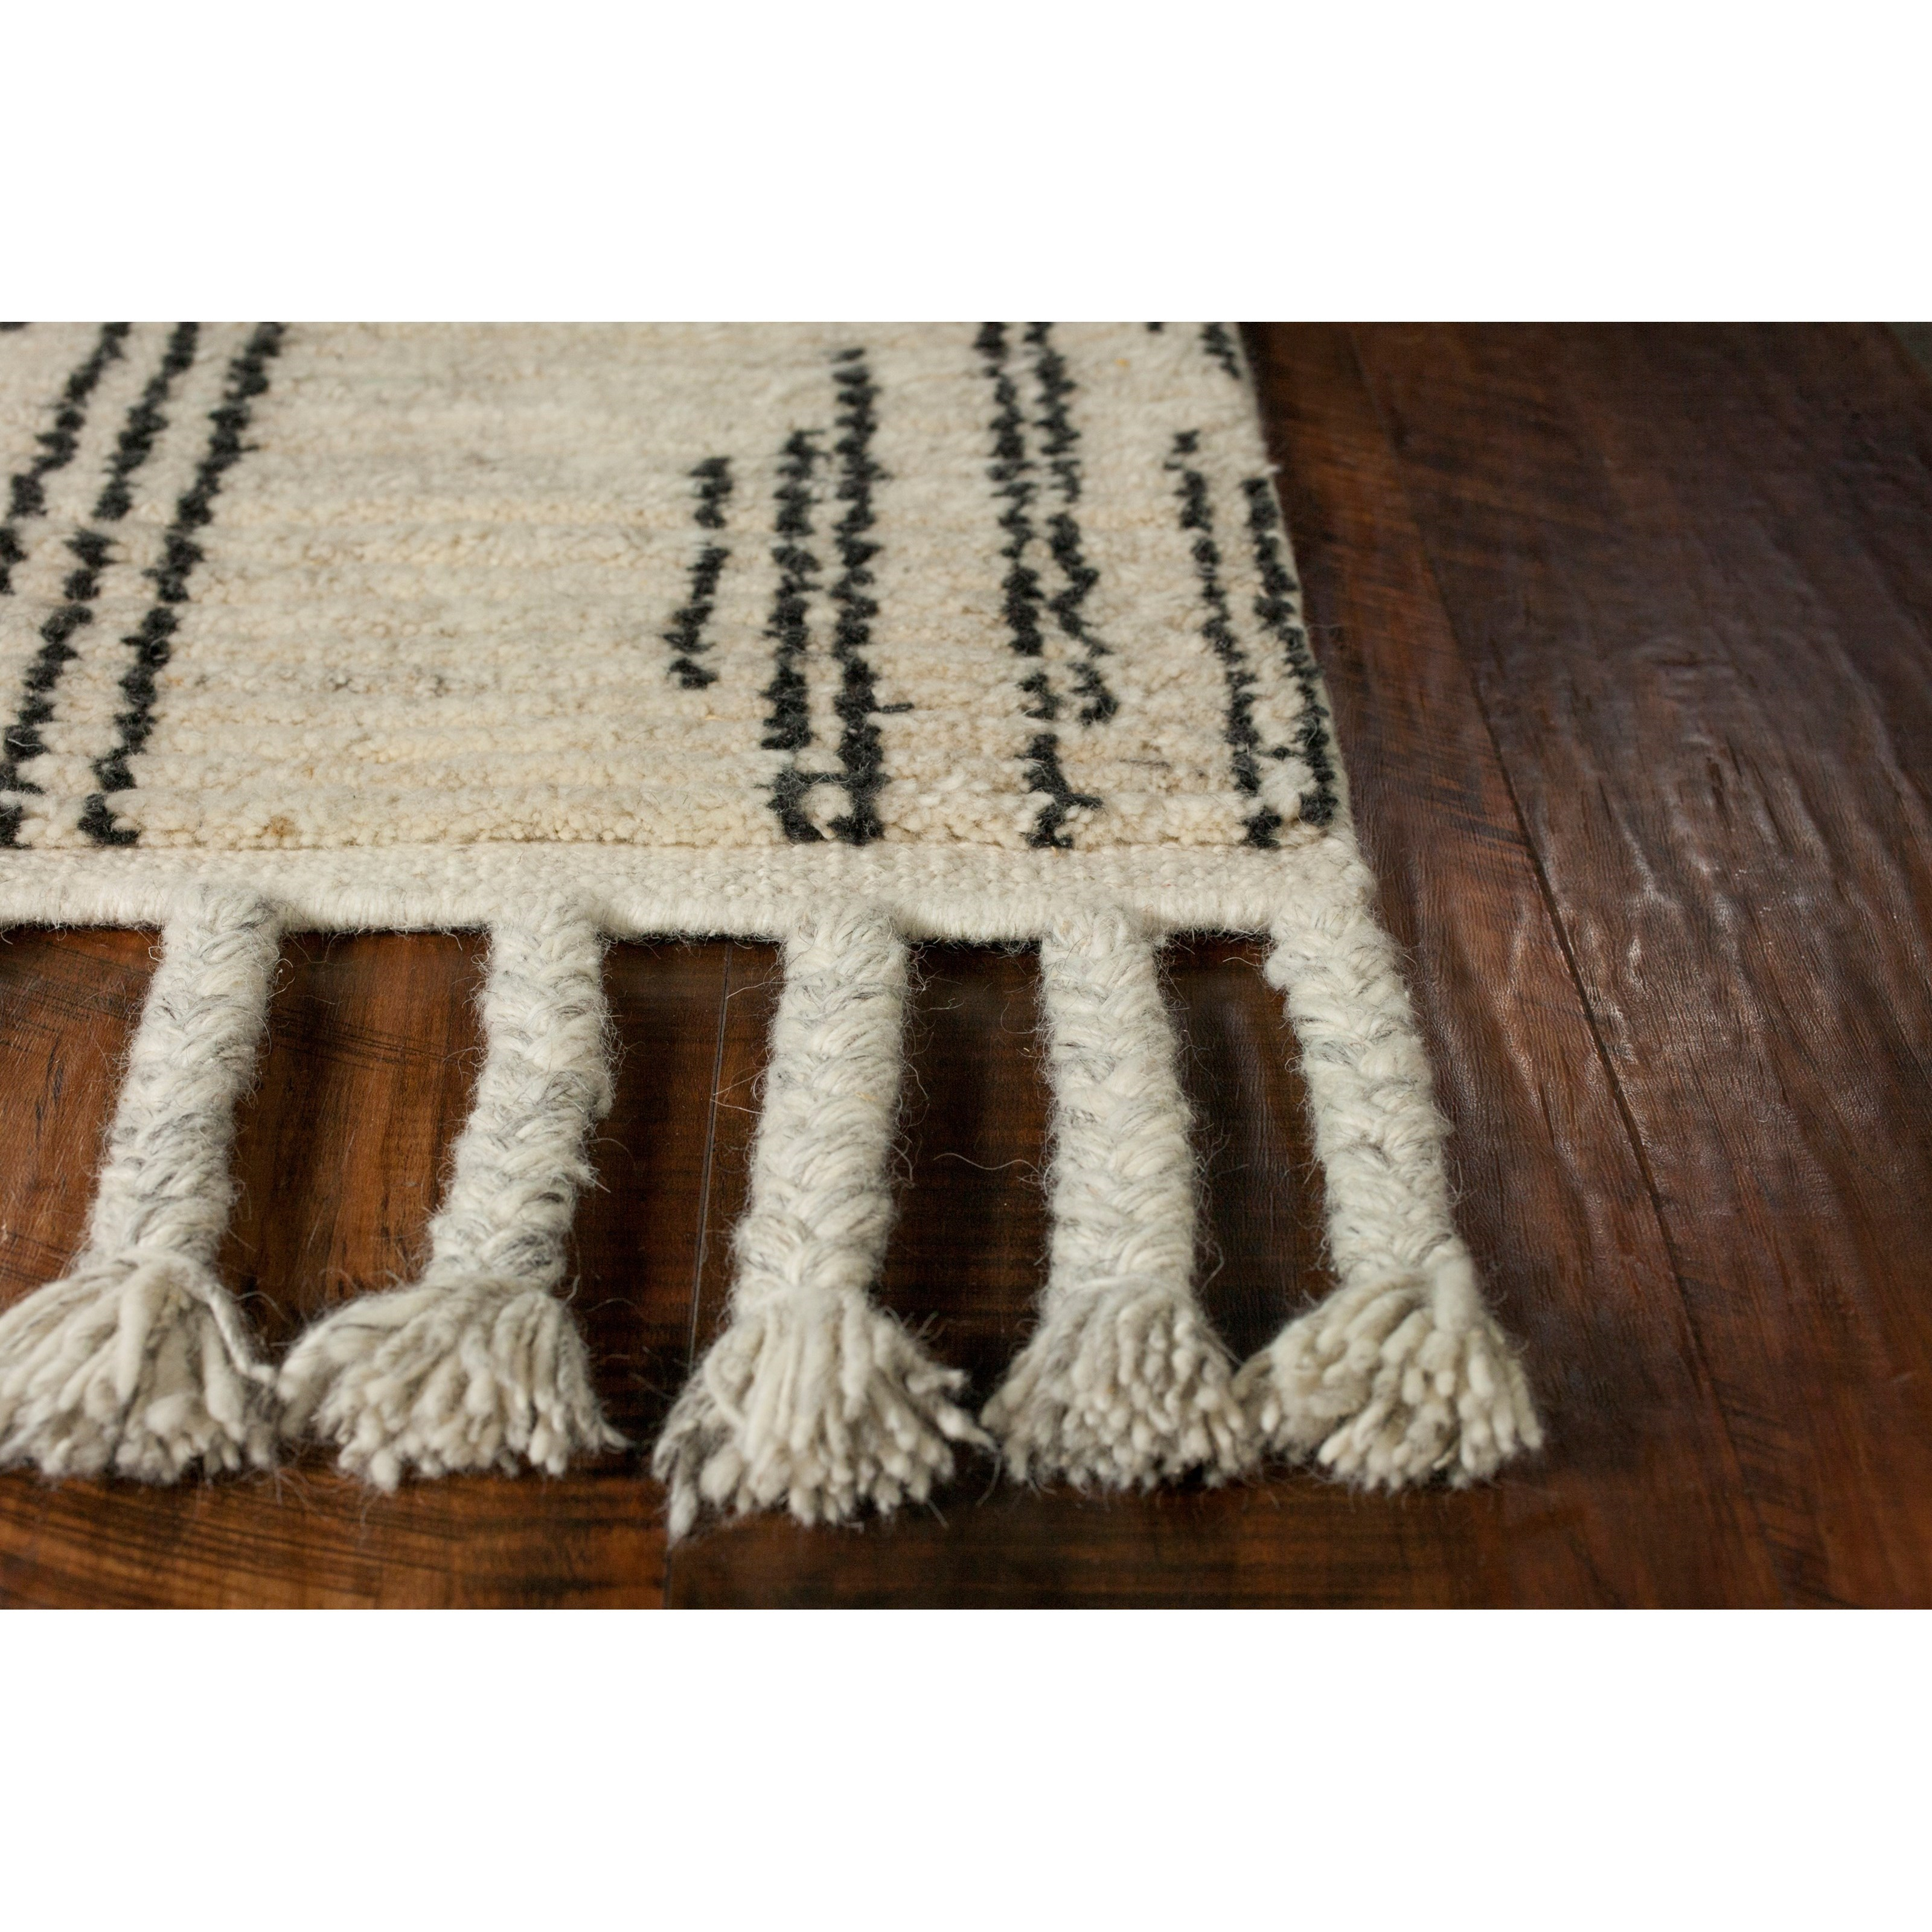 5' x 8' Natural Stitches Rug